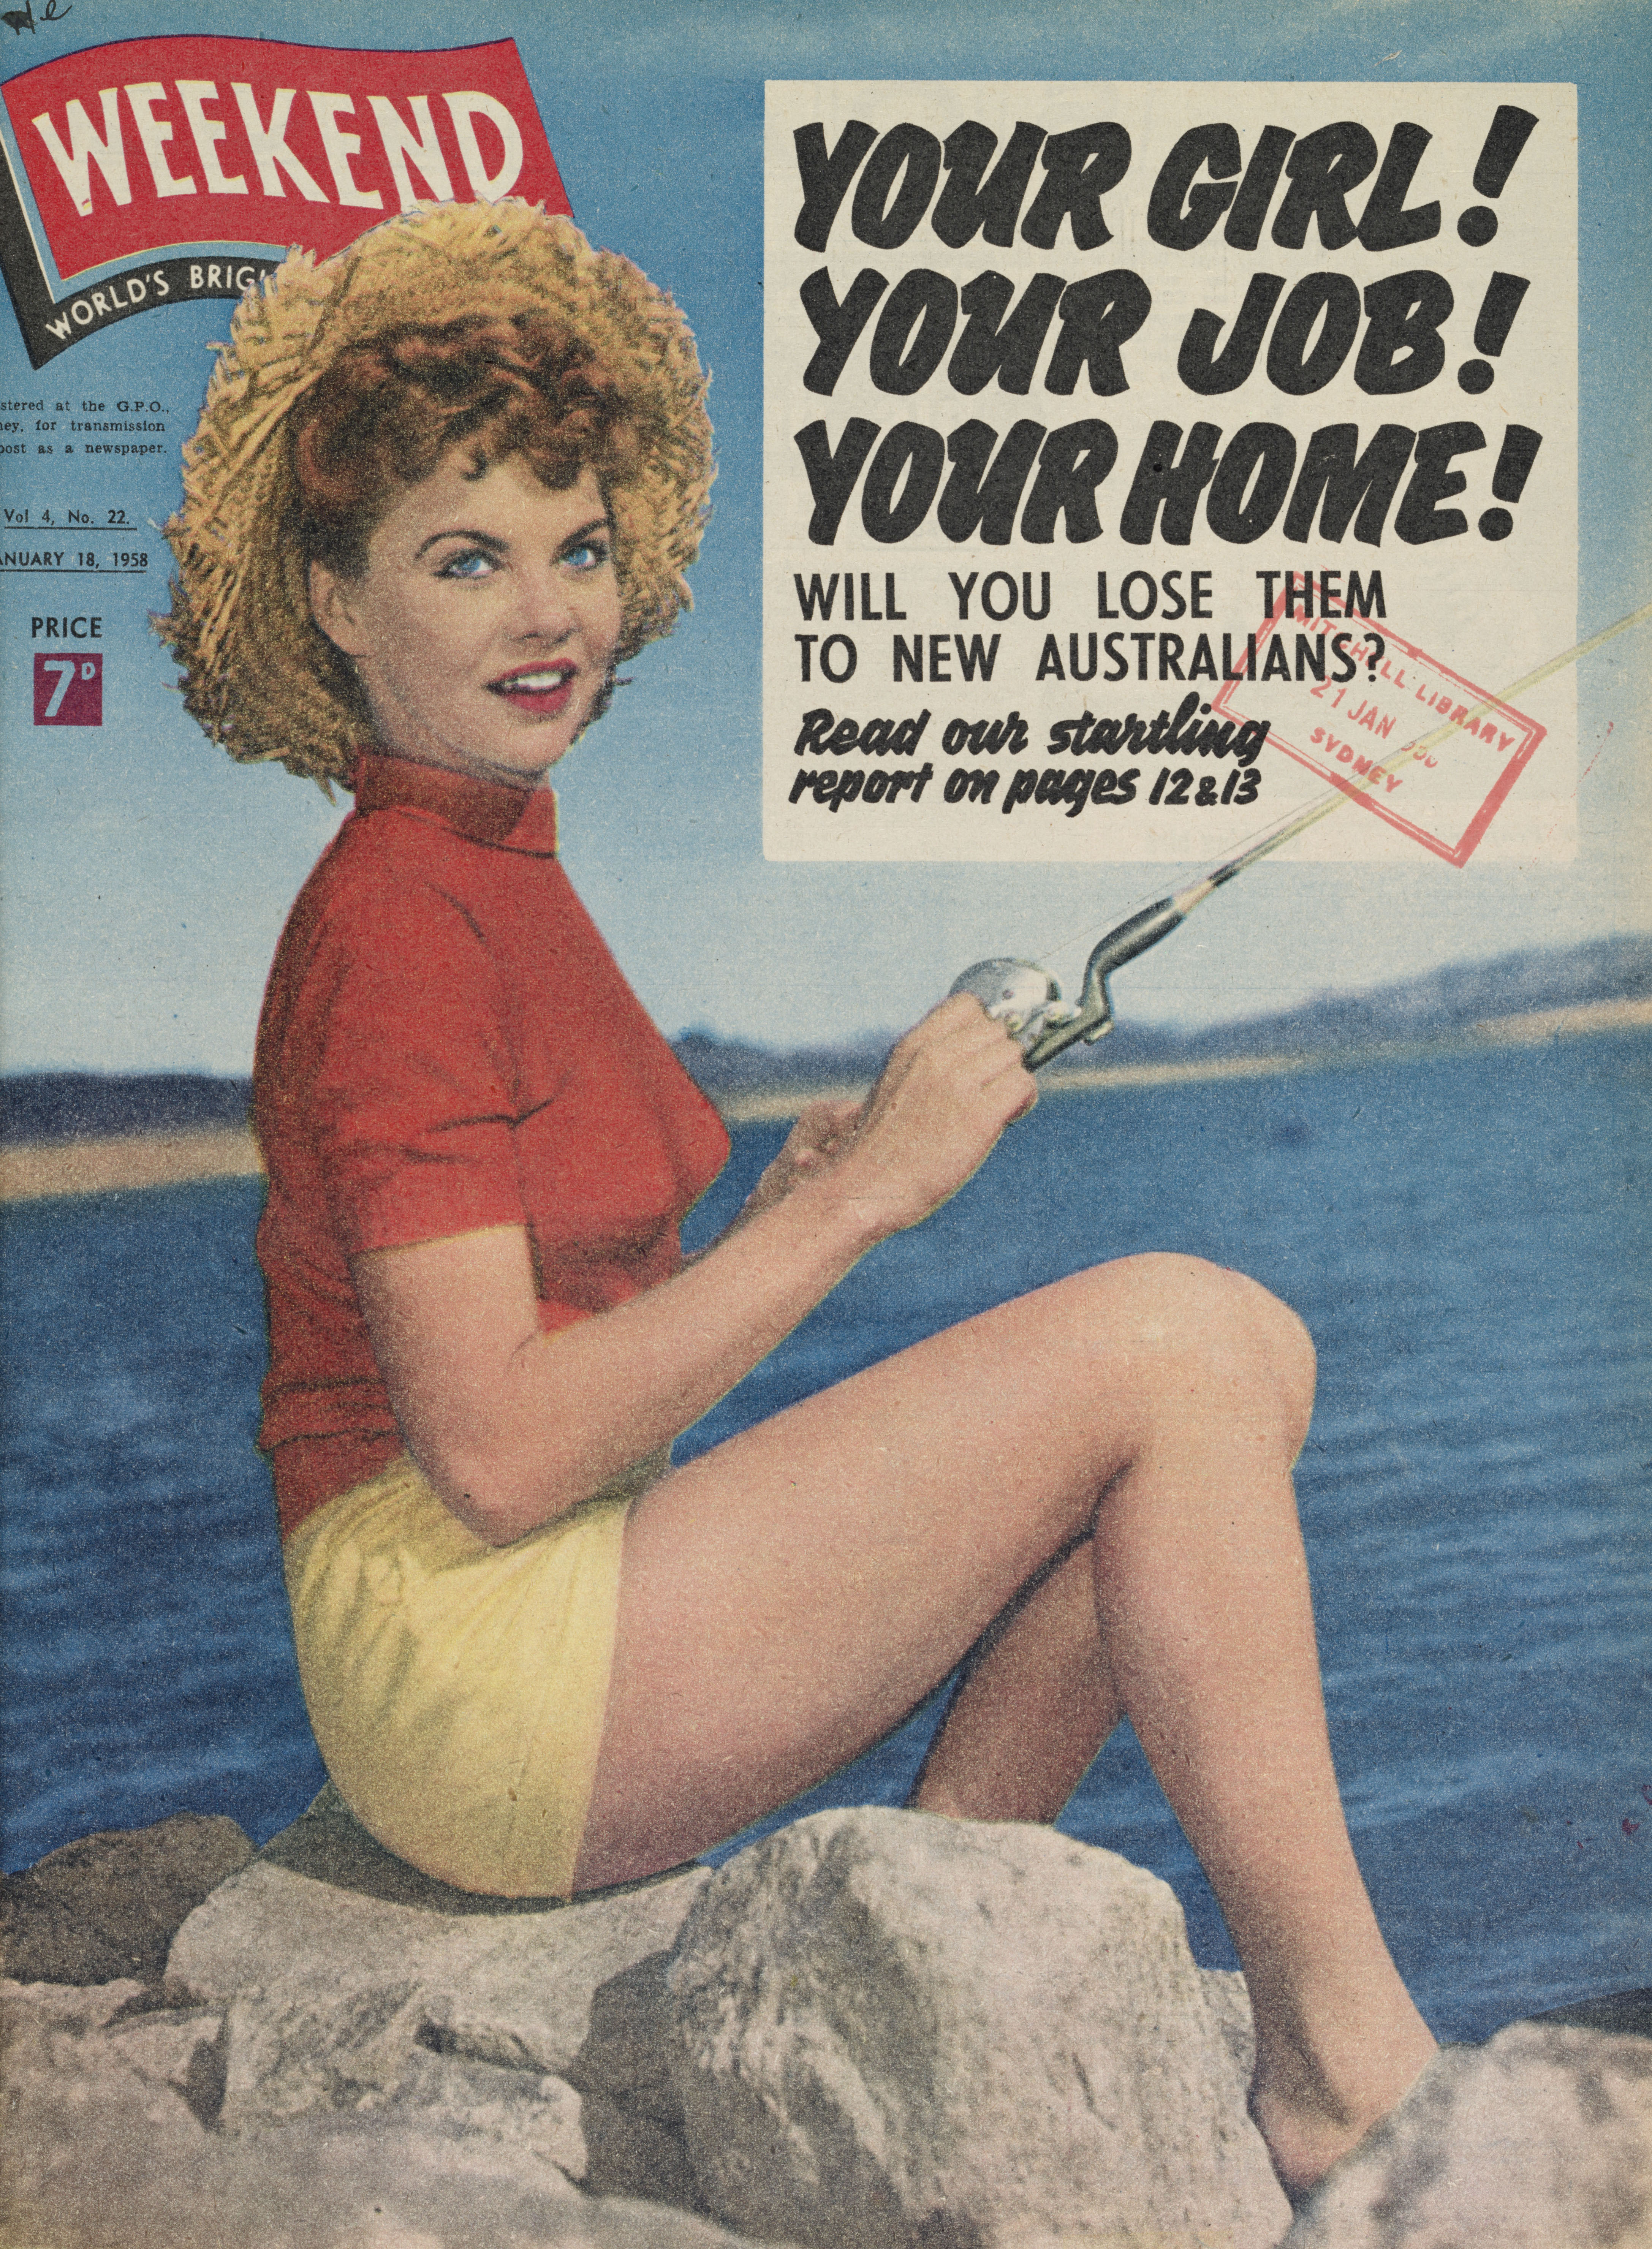 "An old magazine cover, featuring a woman in shorts sitting on rocks, fishing and the headline ""YOUR GIRL! YOUR JOB! YOUR HOME! Will you lose them to new Australians?"""